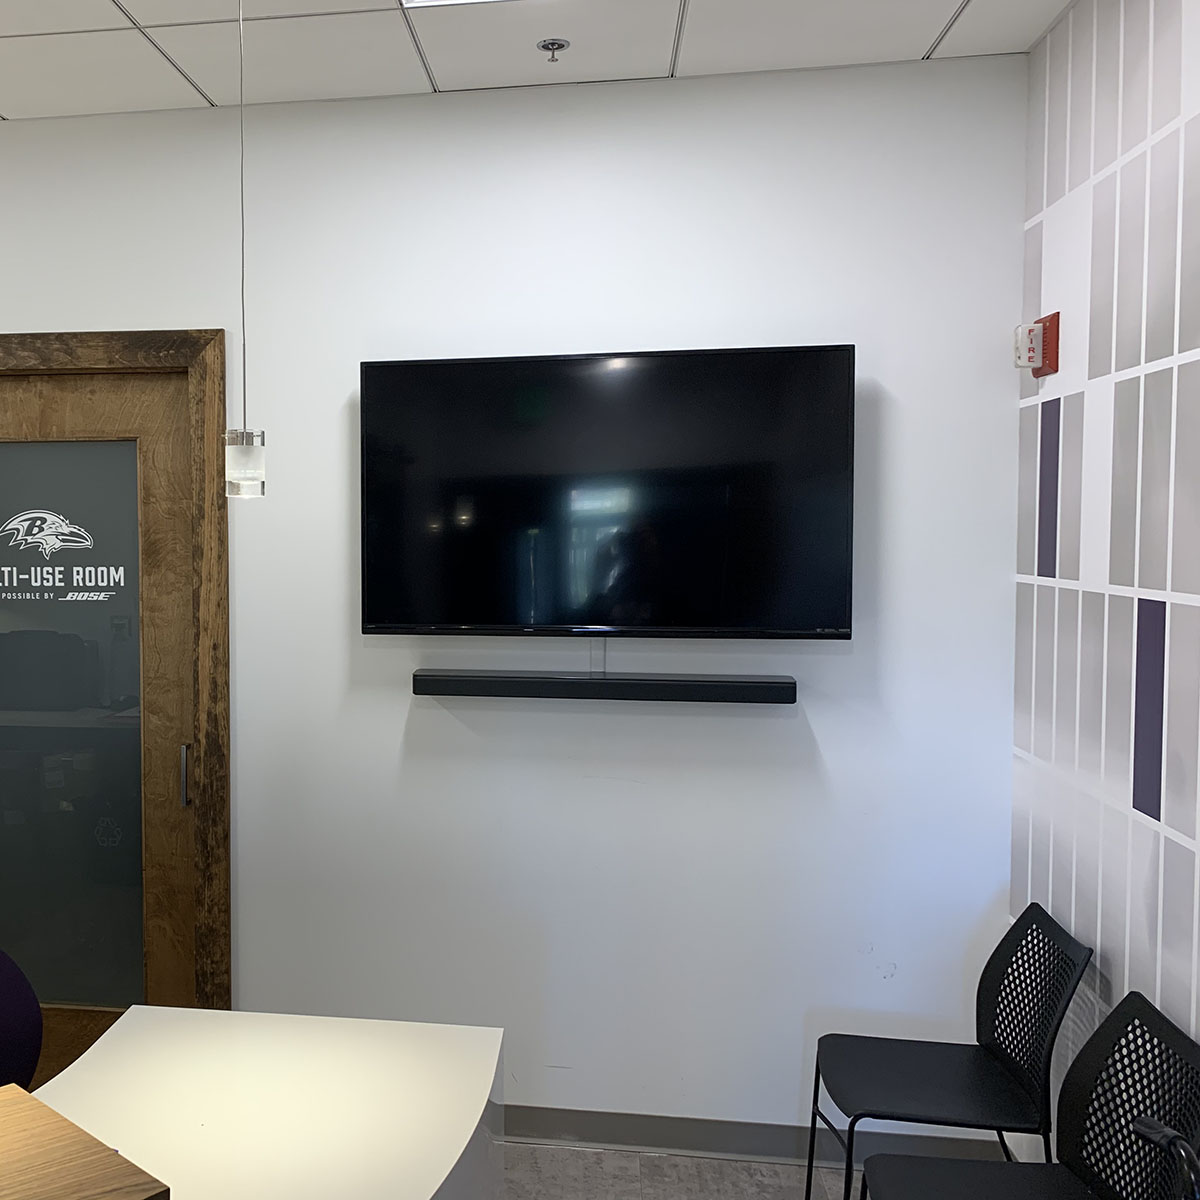 For nursing mothers & other @Ravens fans sensitive to noise, M&T Bank Stadium and Bose have outfitted two multi-use rooms equipped with #BoseHeadphones, soundbars, toys and more. Click to learn more about our #SoundSanctuary program: bose.life/33OLccU